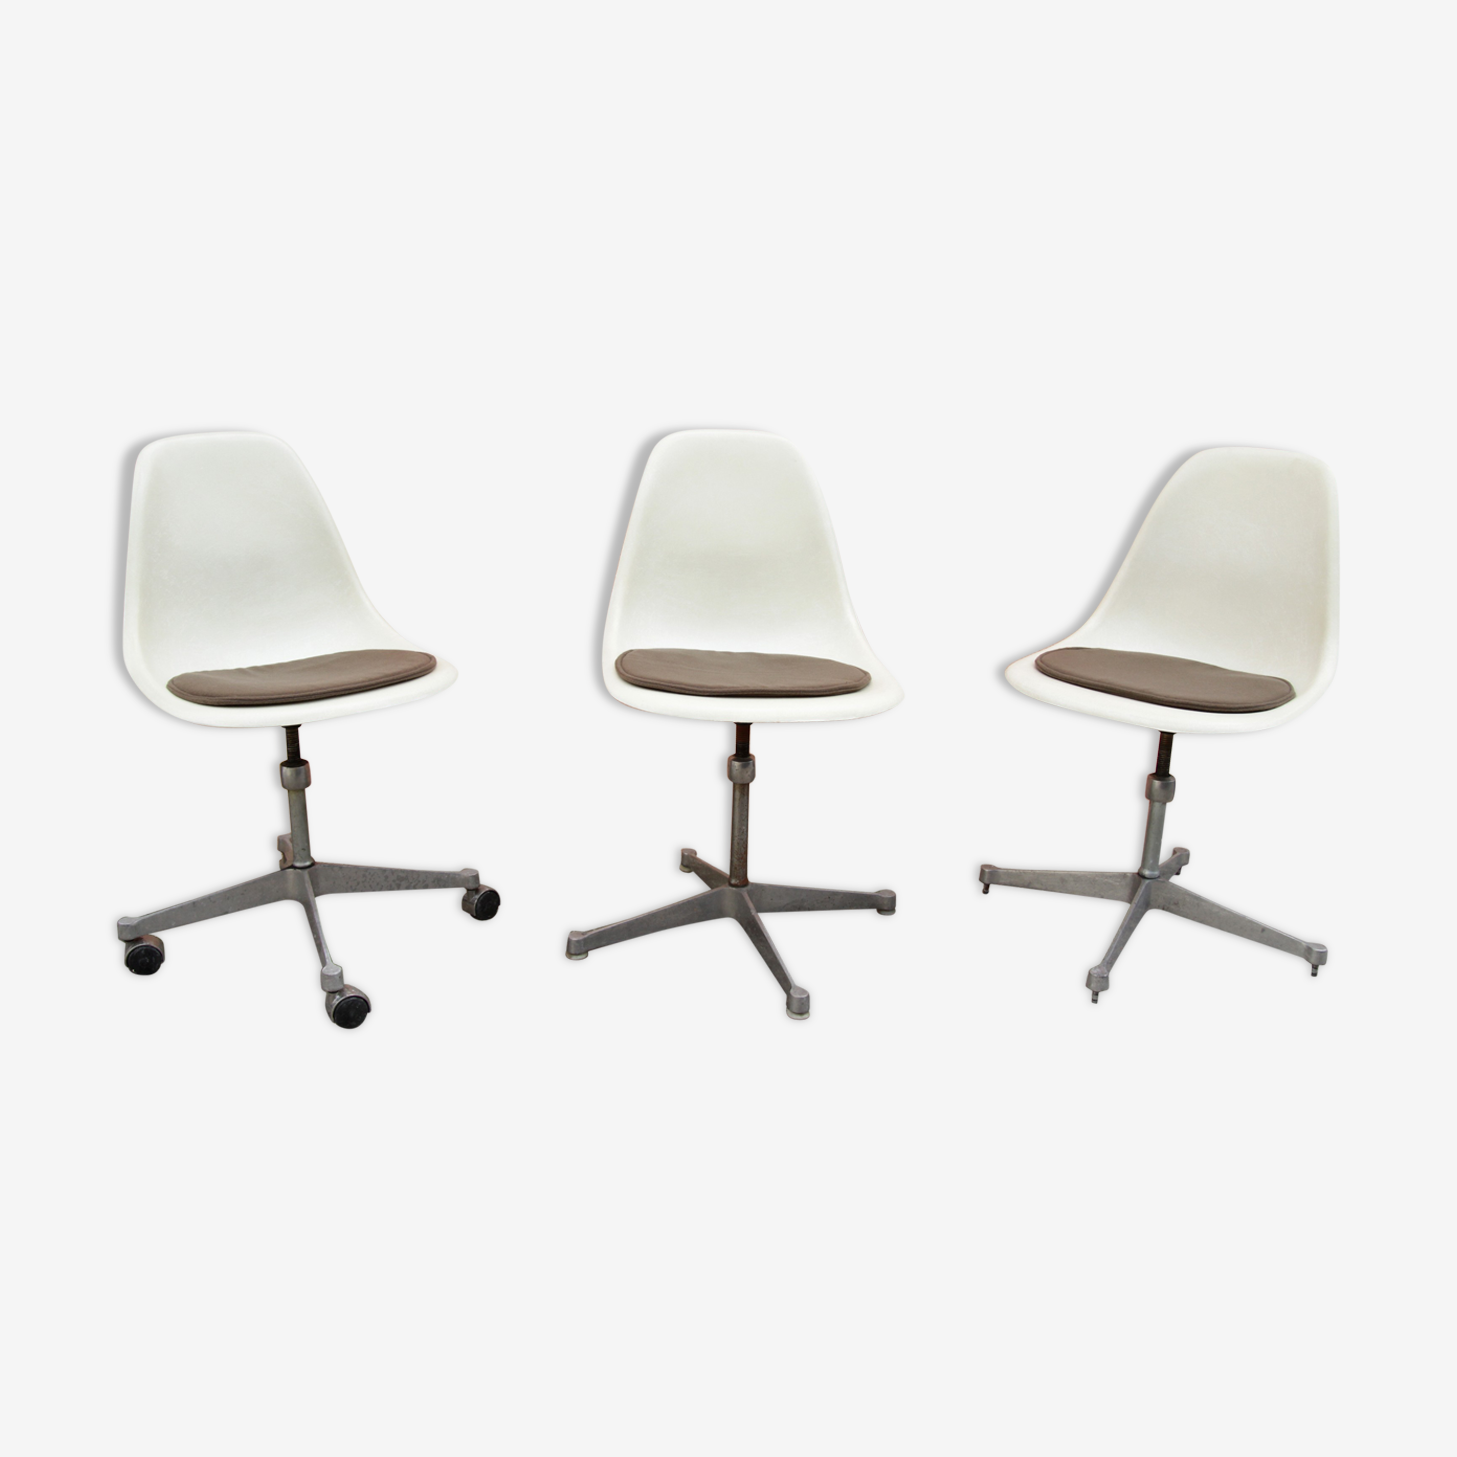 PSC  chairs Eames Herman Miller